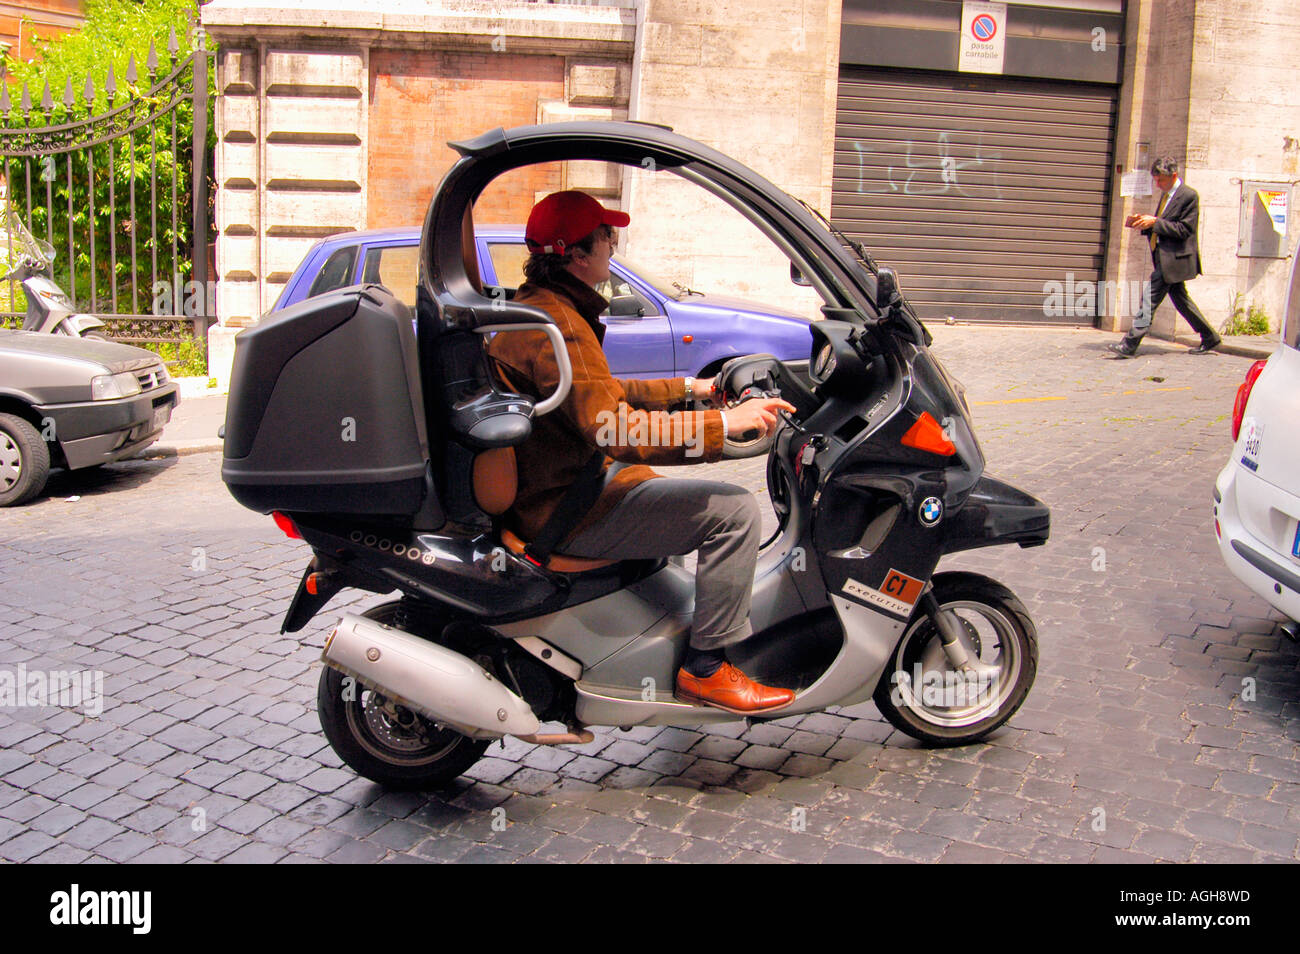 Motorbike Roof Amp Motorbike Is Innovative Smart And Small